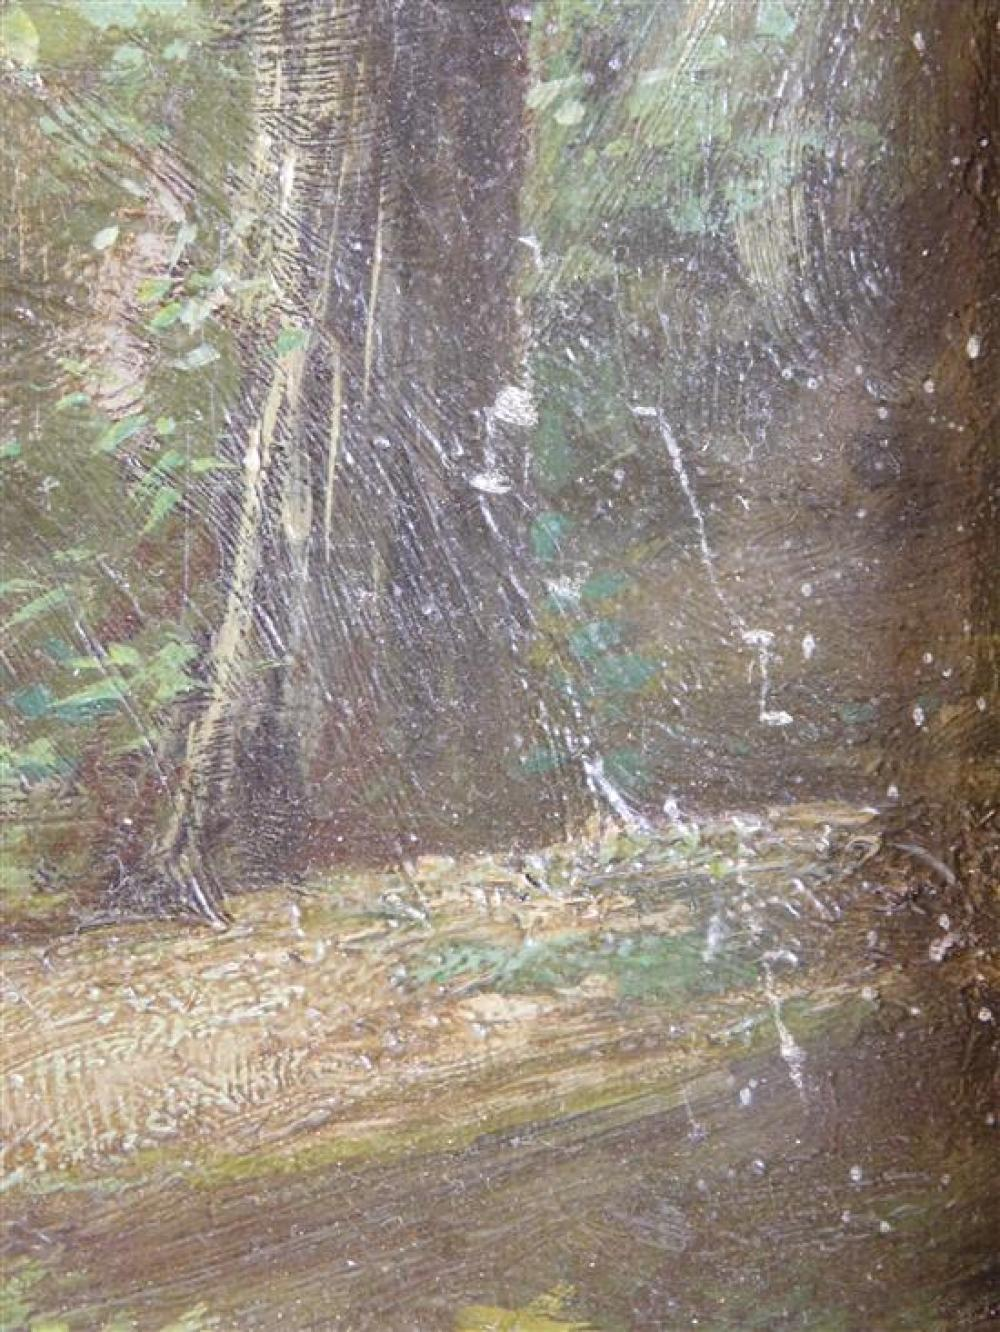 Barbizon type oil on canvas, late 19th/ early 20th C., depicts path in forest with small figure in distance, no visible signature, i...